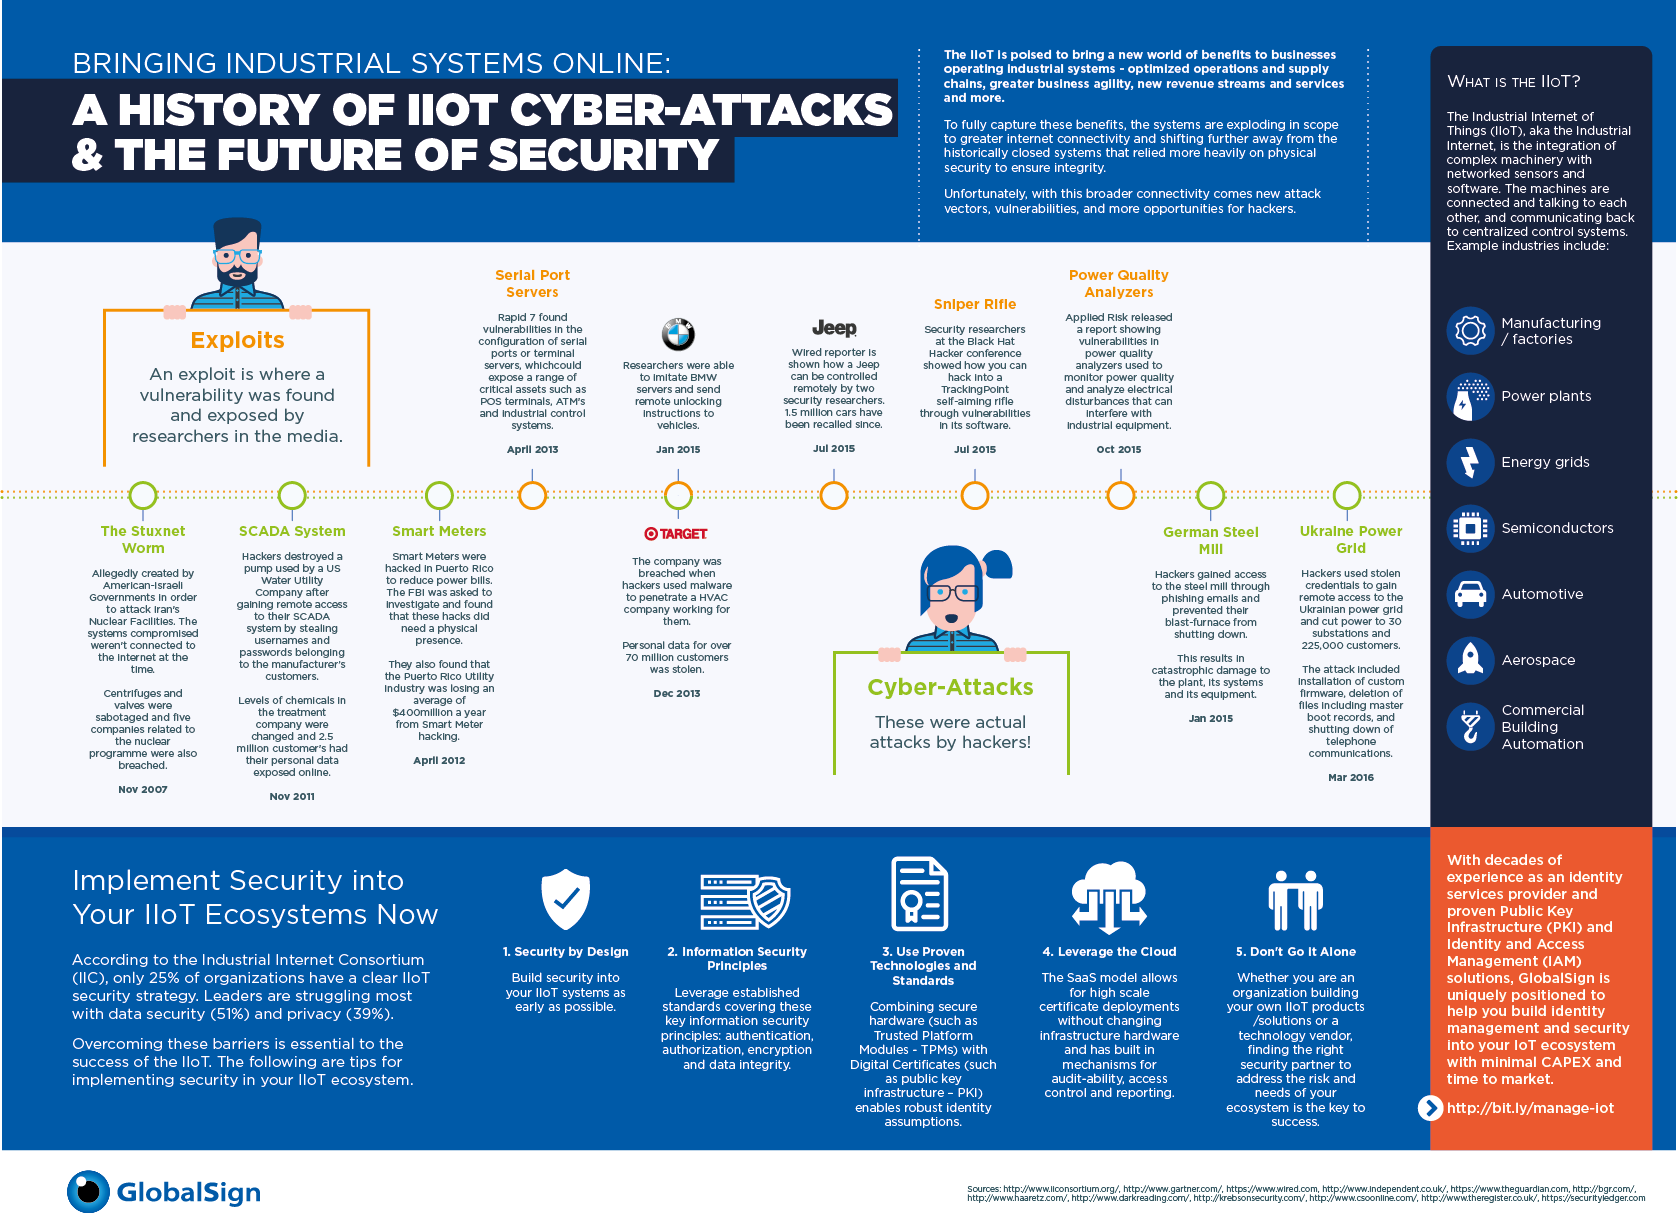 Small A History of IIoT Cyber-Attacks & the Future of Security Infographic